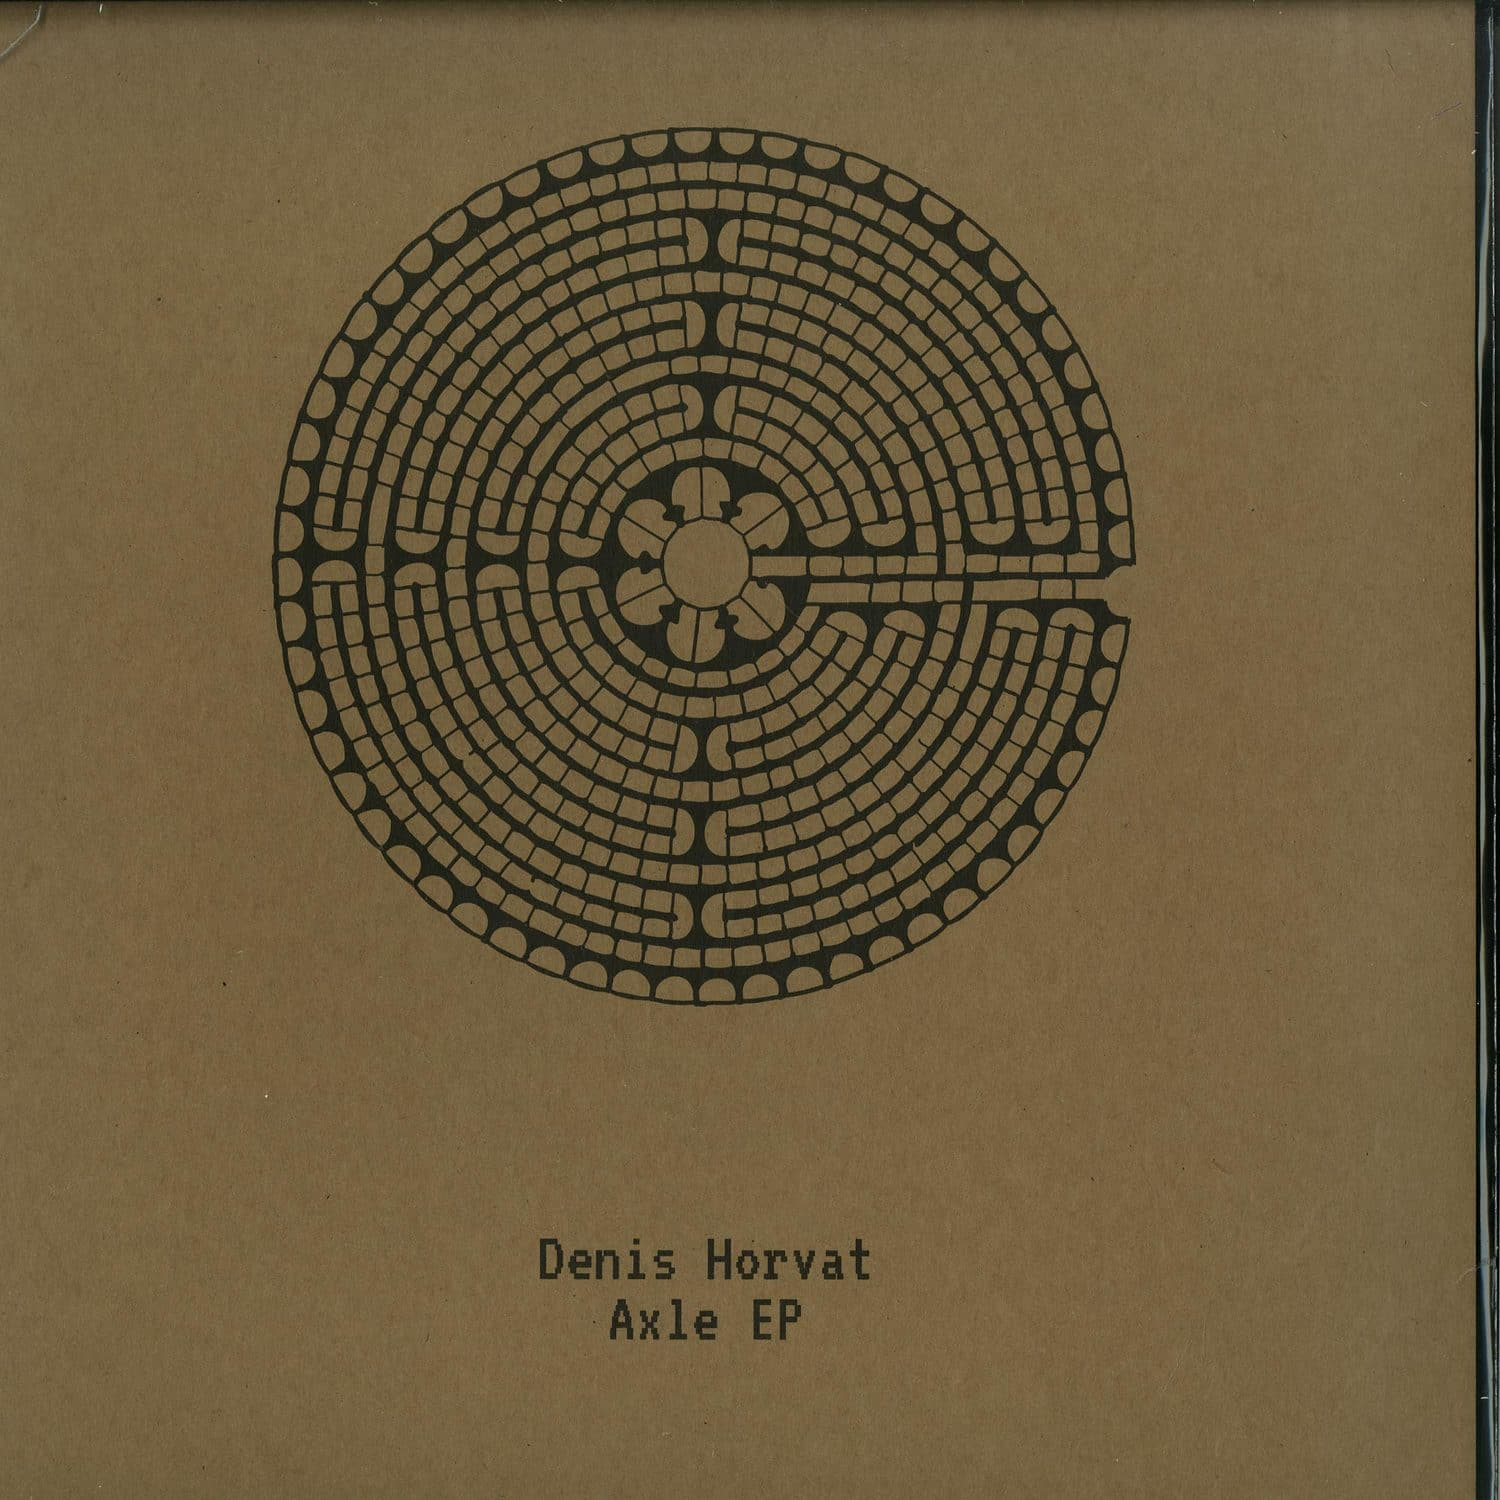 Denis Horvat - AXLE EP